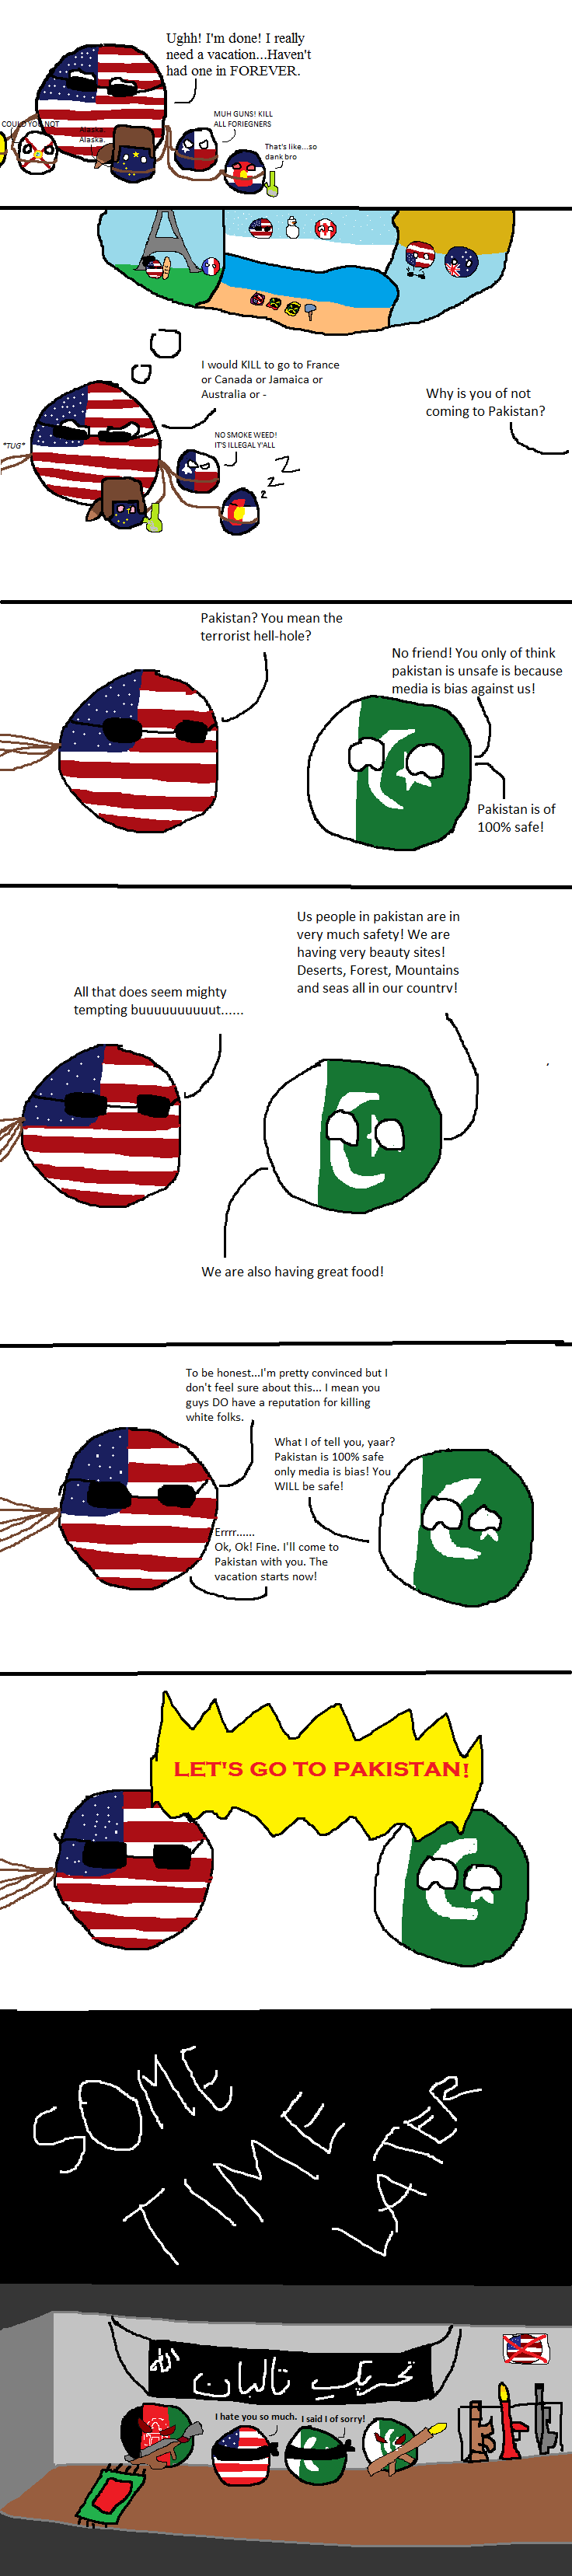 America's Great Pakistani Vacation!